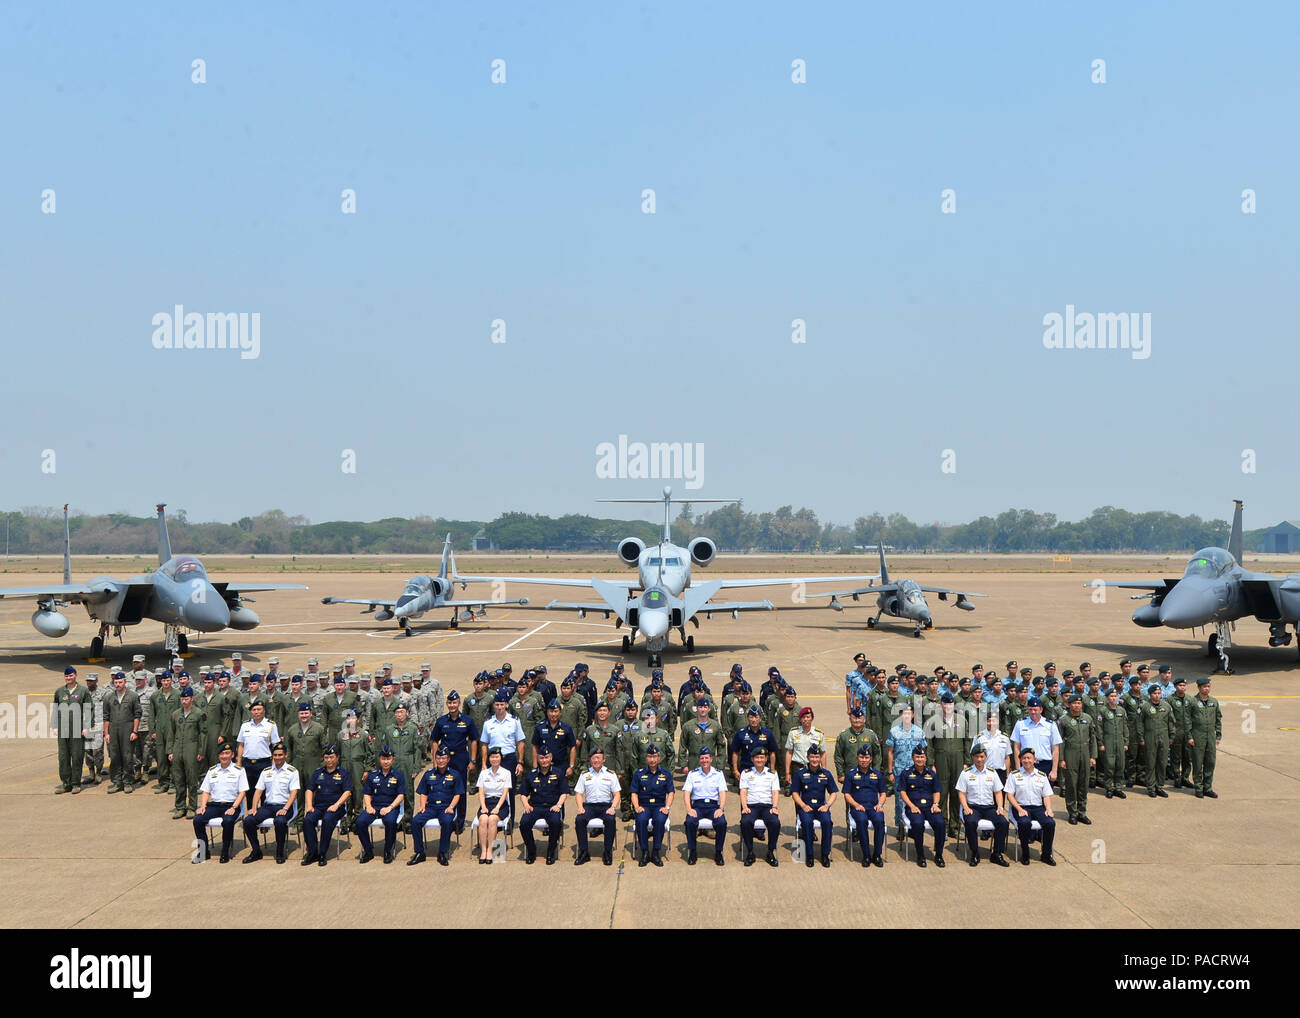 Military members from the Republic of Singapore Air Force, Royal